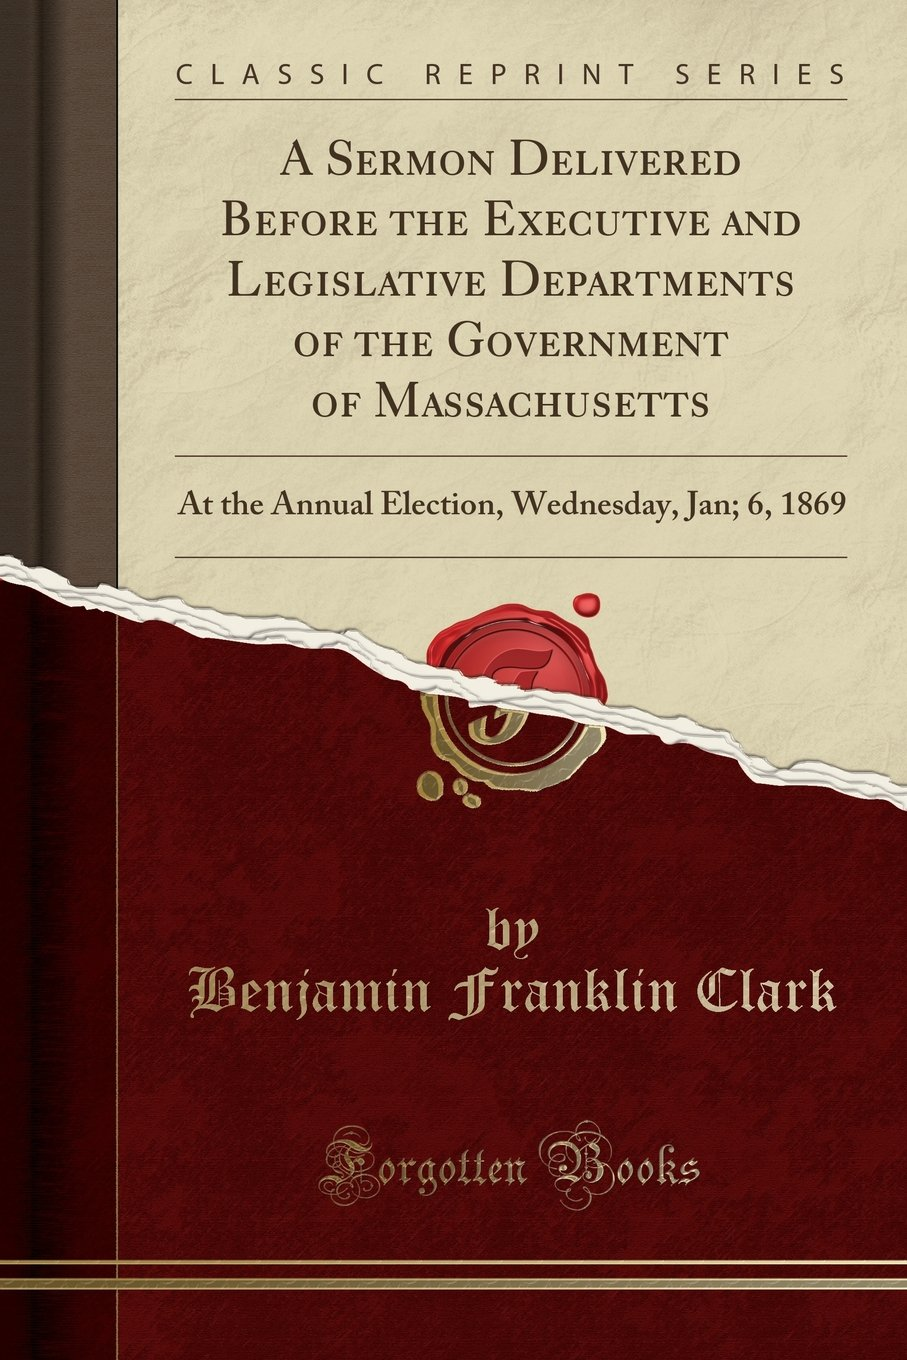 A Sermon Delivered Before the Executive and Legislative Departments of the Government of Massachusetts: At the Annual Election, Wednesday, Jan; 6, 1869 (Classic Reprint) PDF